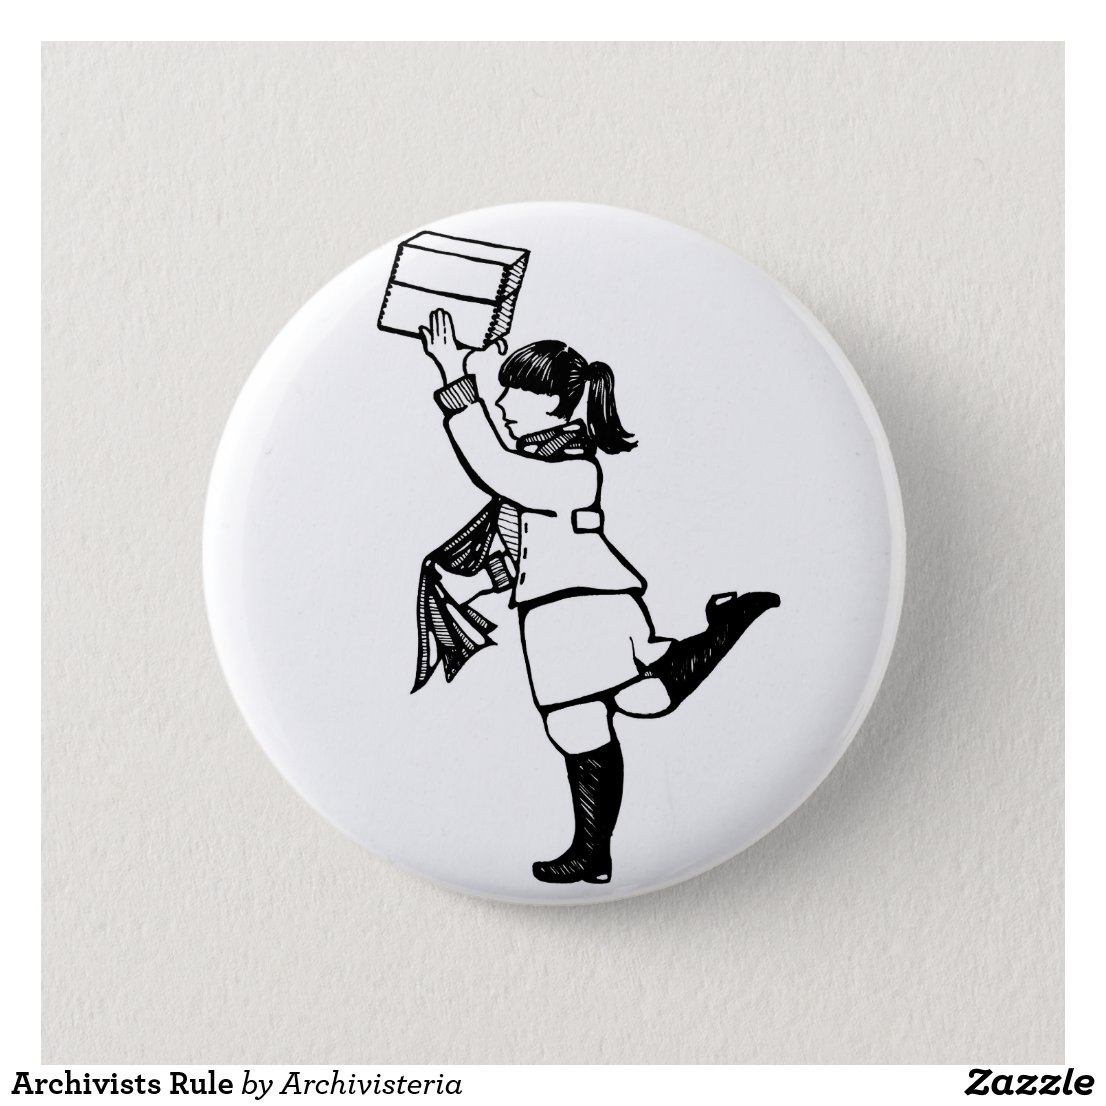 Visit Archivisteria on Zazzle.com for fun, interesting designs just for Archivists!